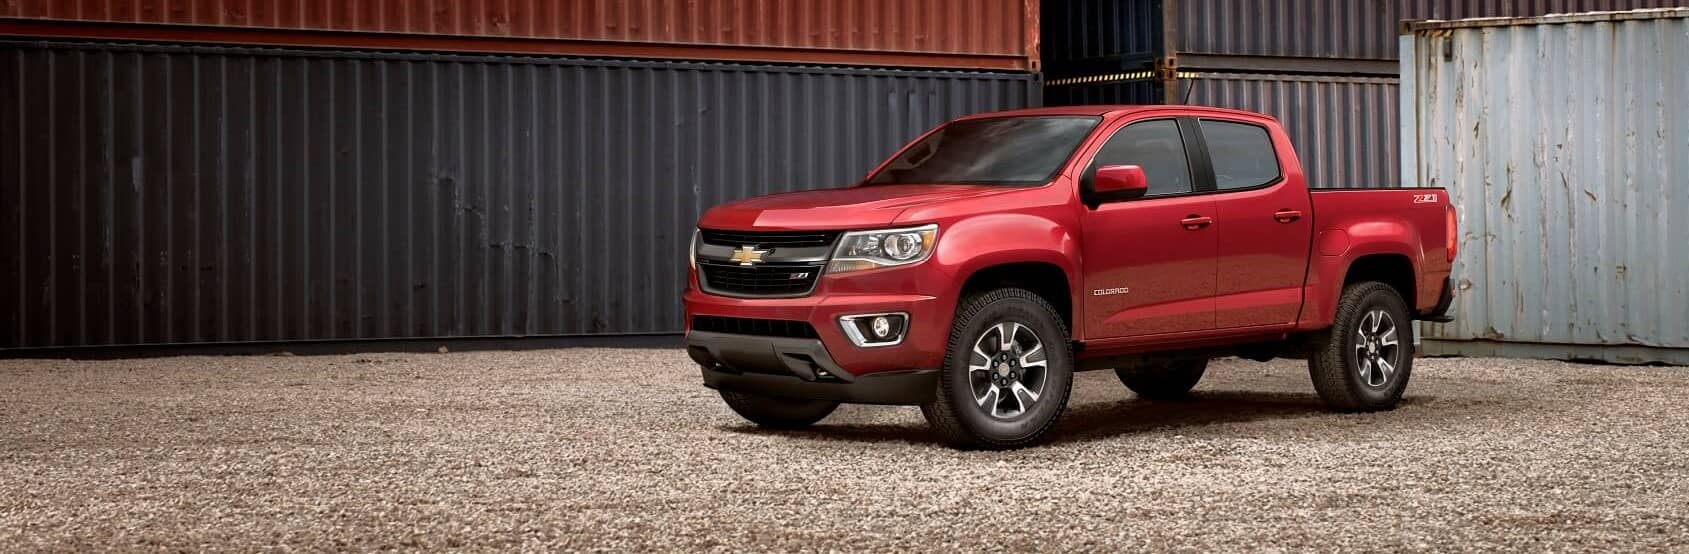 Used Chevys for Sale